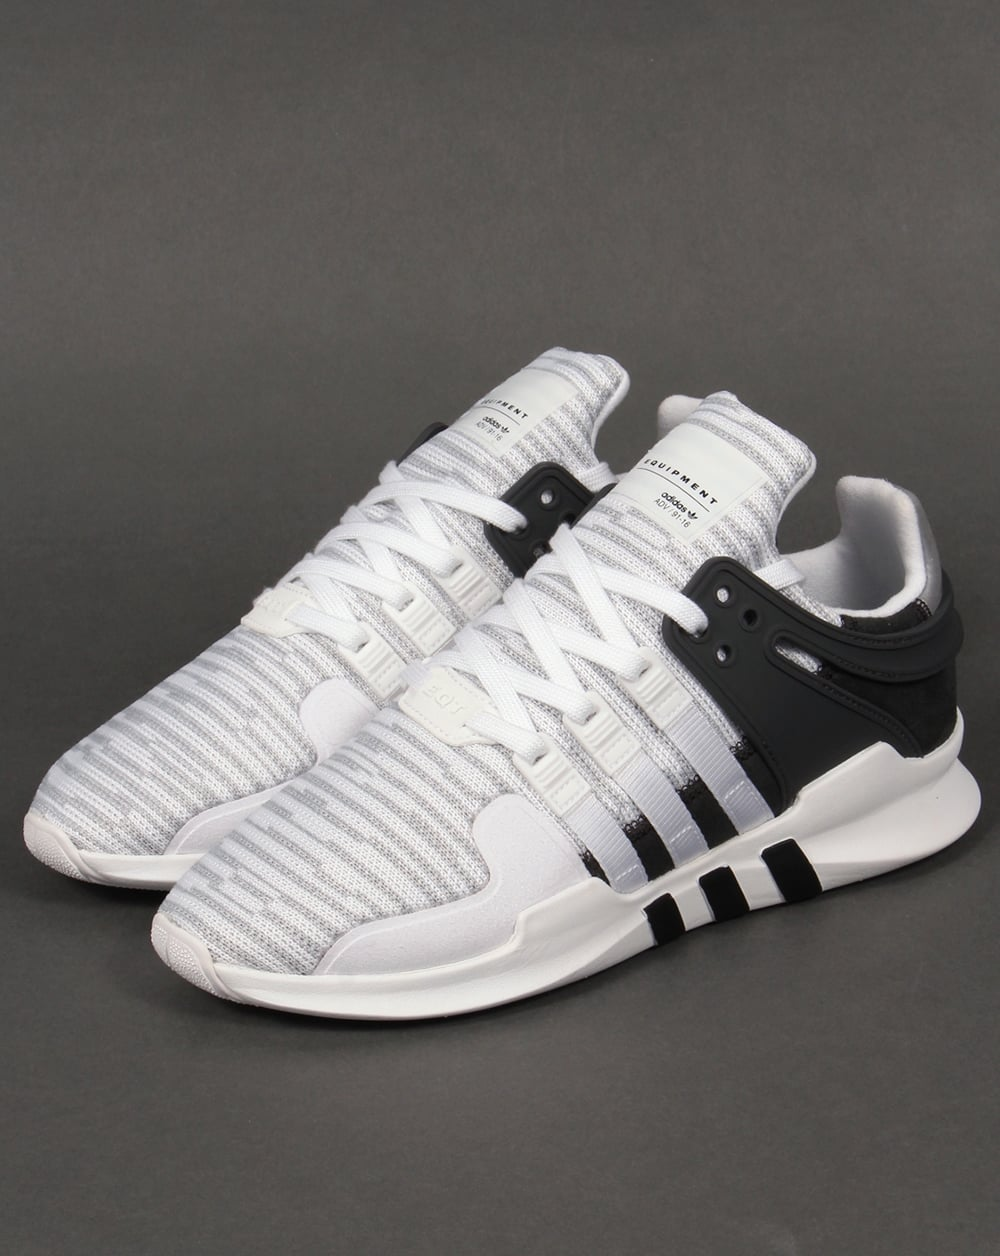 competitive price def43 e7542 Adidas Equipment Support Trainers White/Black